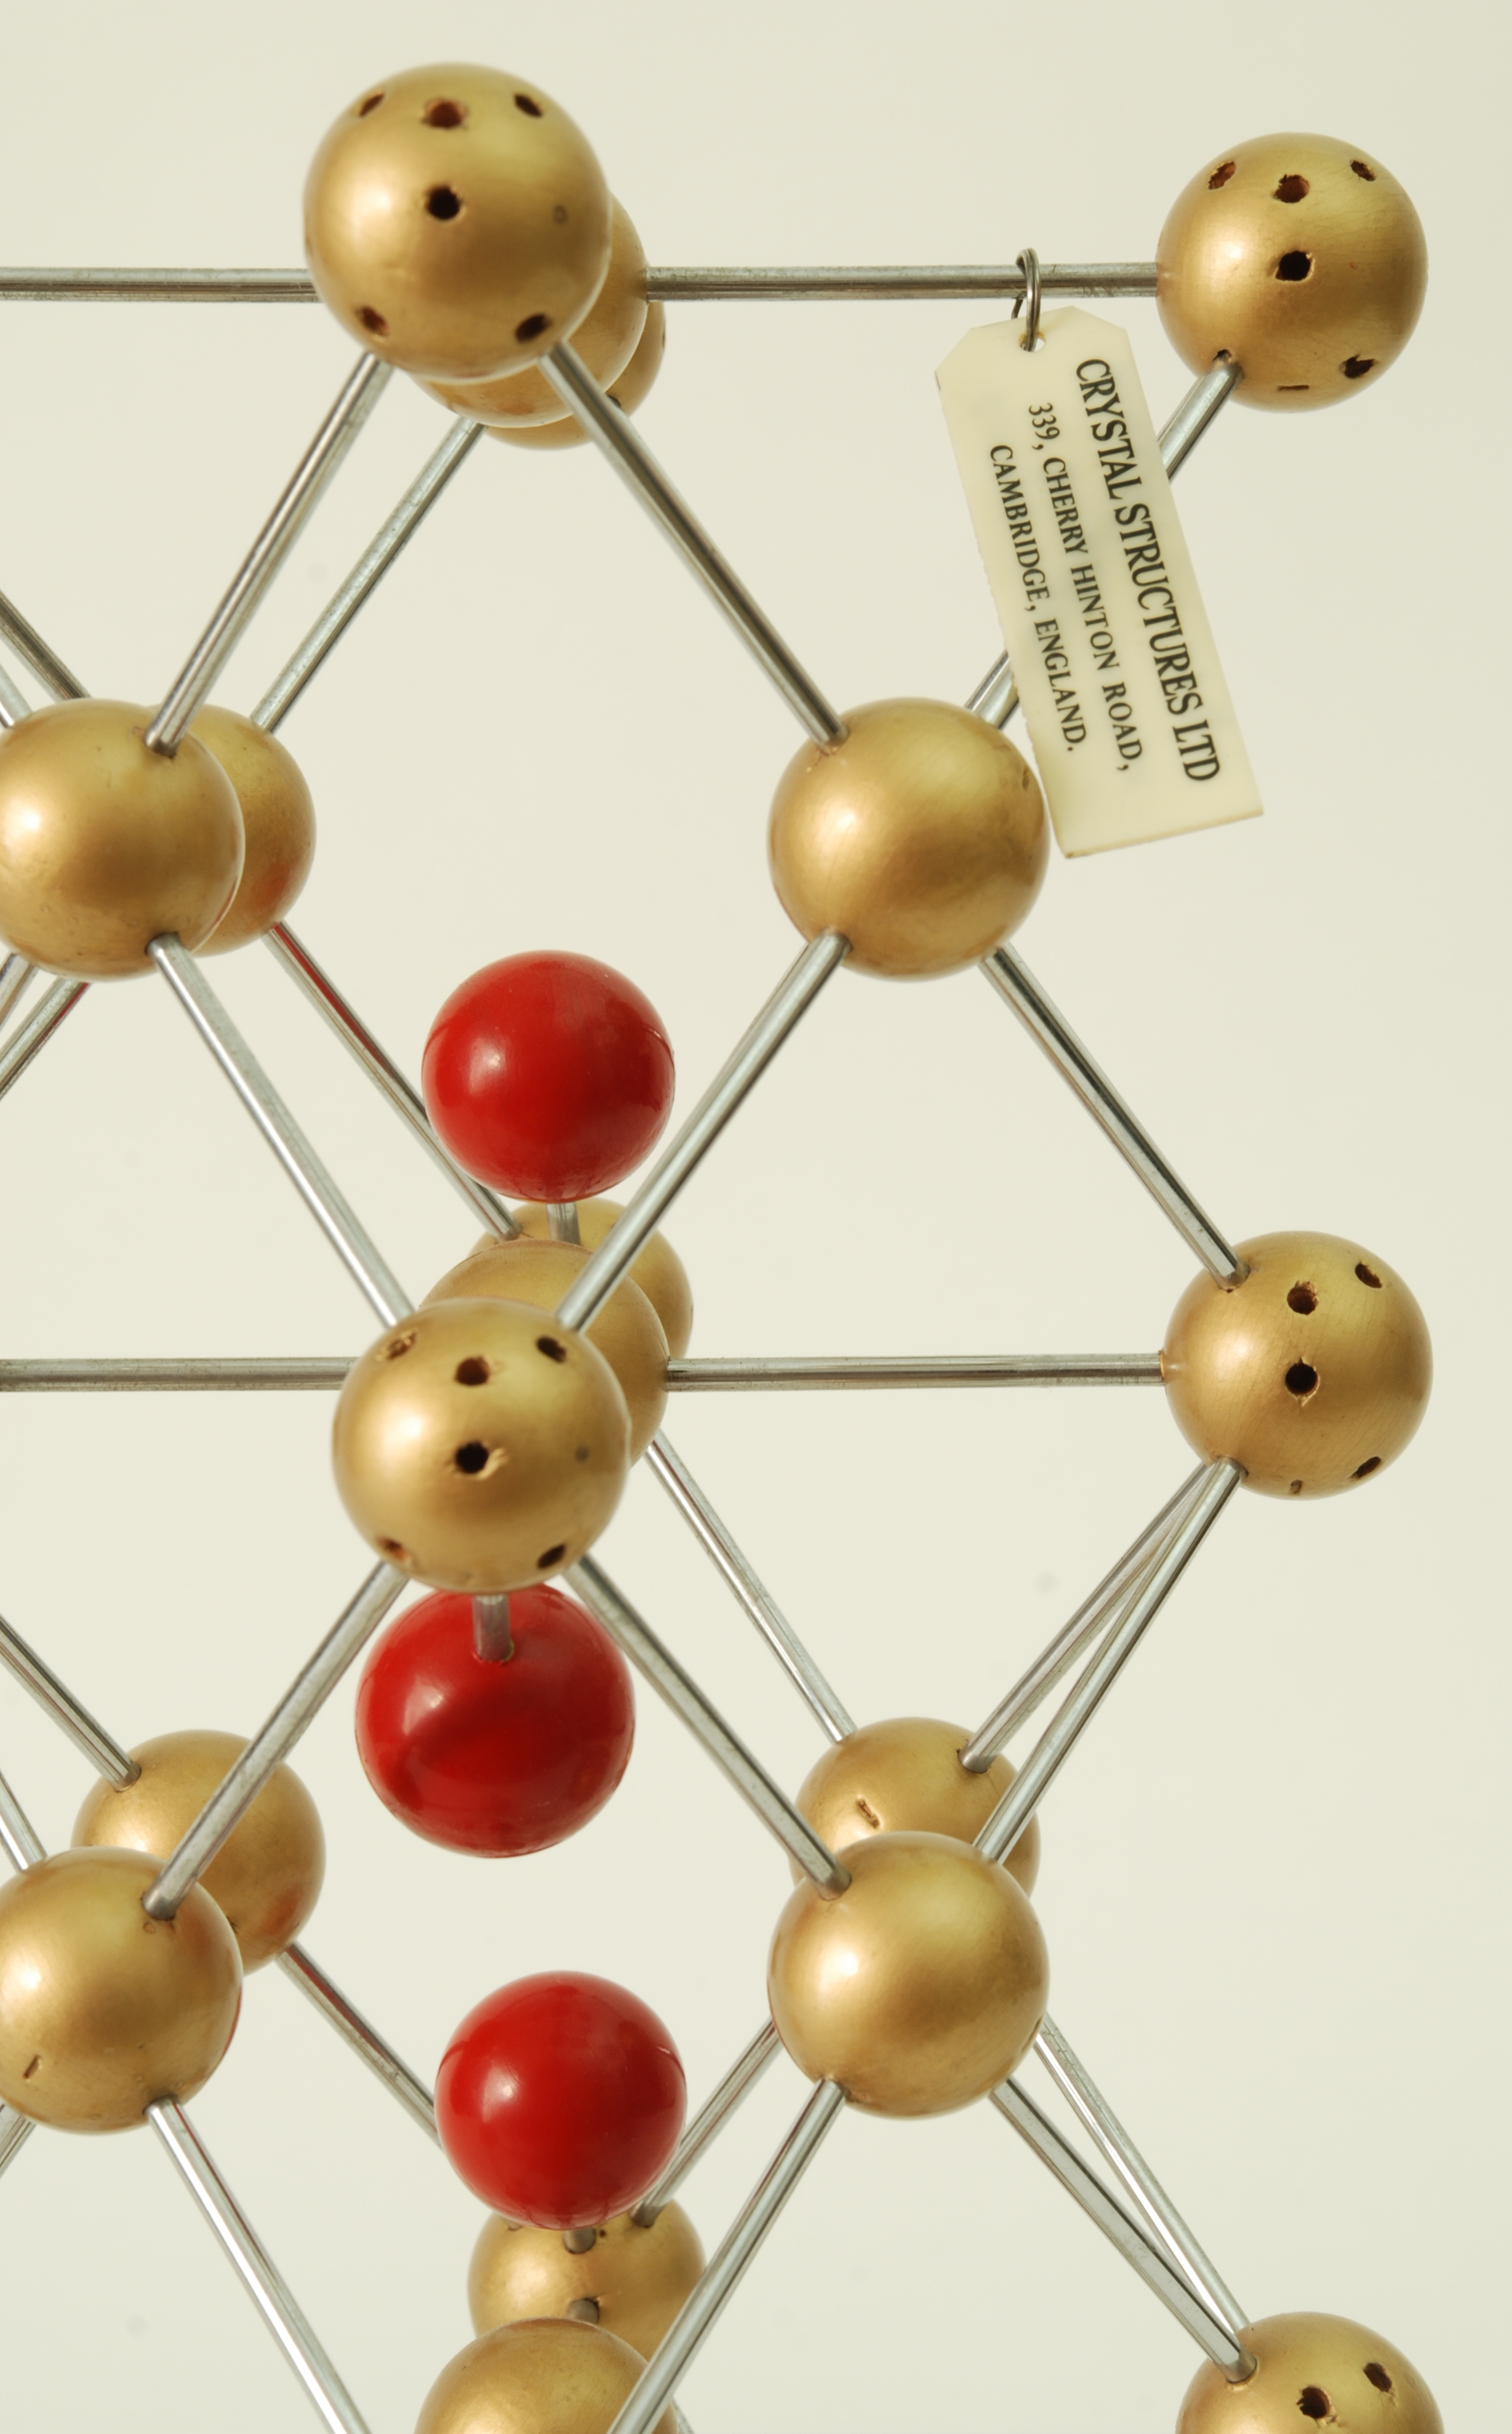 MID CENTURY 'CRYSTAL STRUCTURES LTD' MOLECULE MODEL